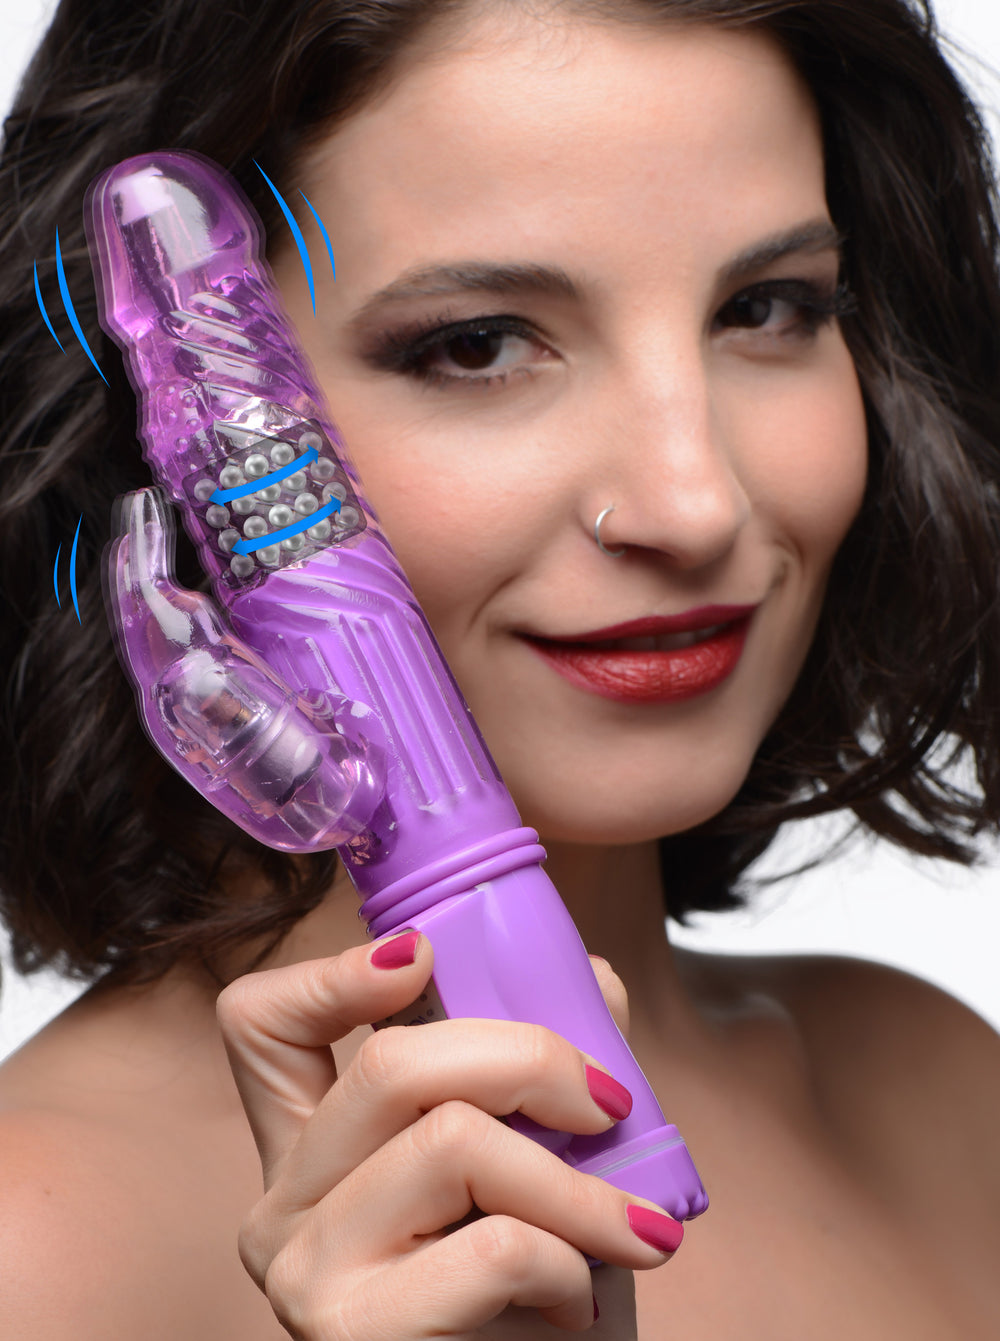 36X Purple Rabbit Vibrator - Fun and Kinky Sex Toys